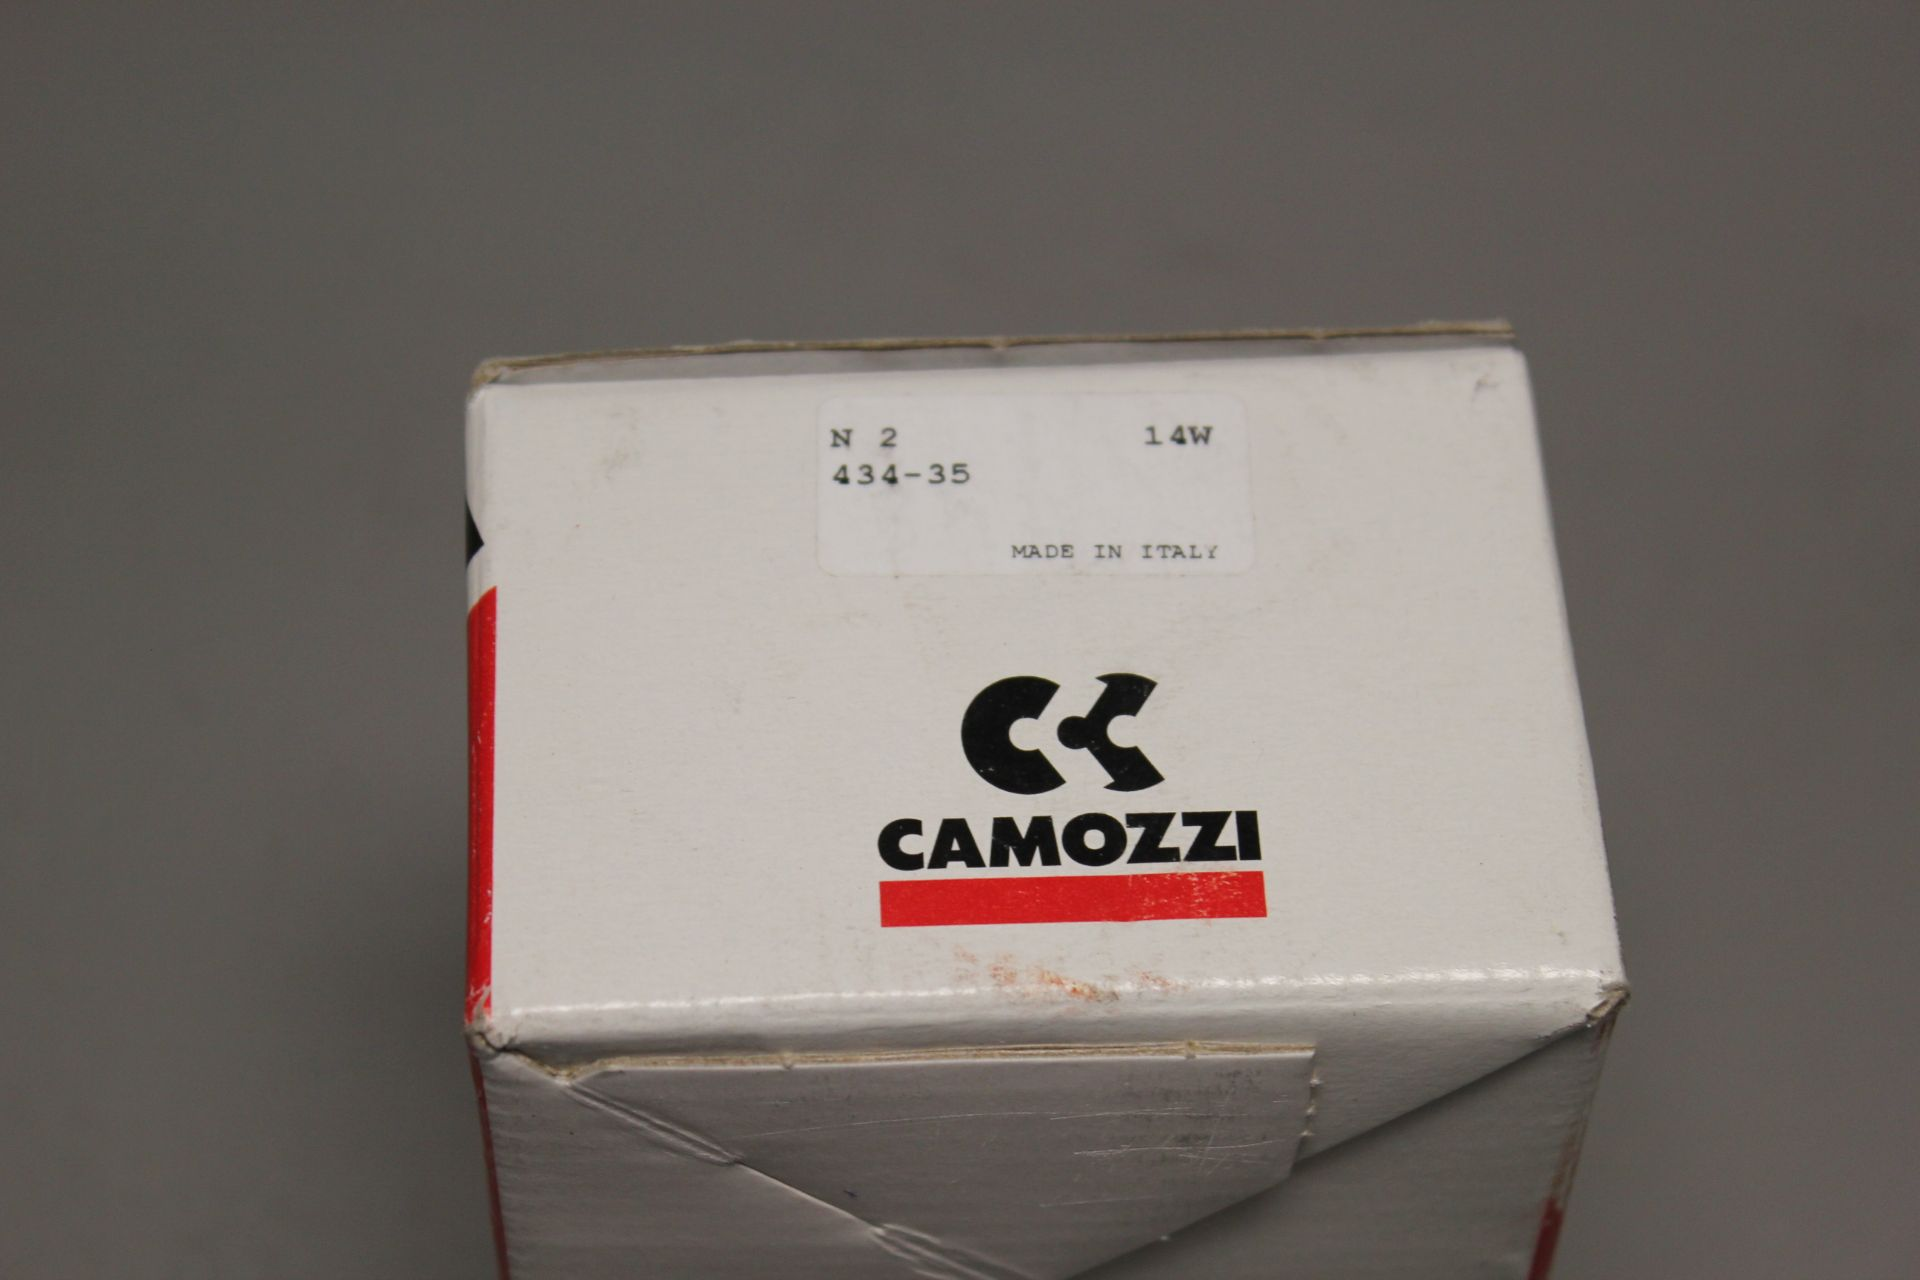 LOT OF NEW CAMOZZI SOLENOID VALVES - Image 2 of 3